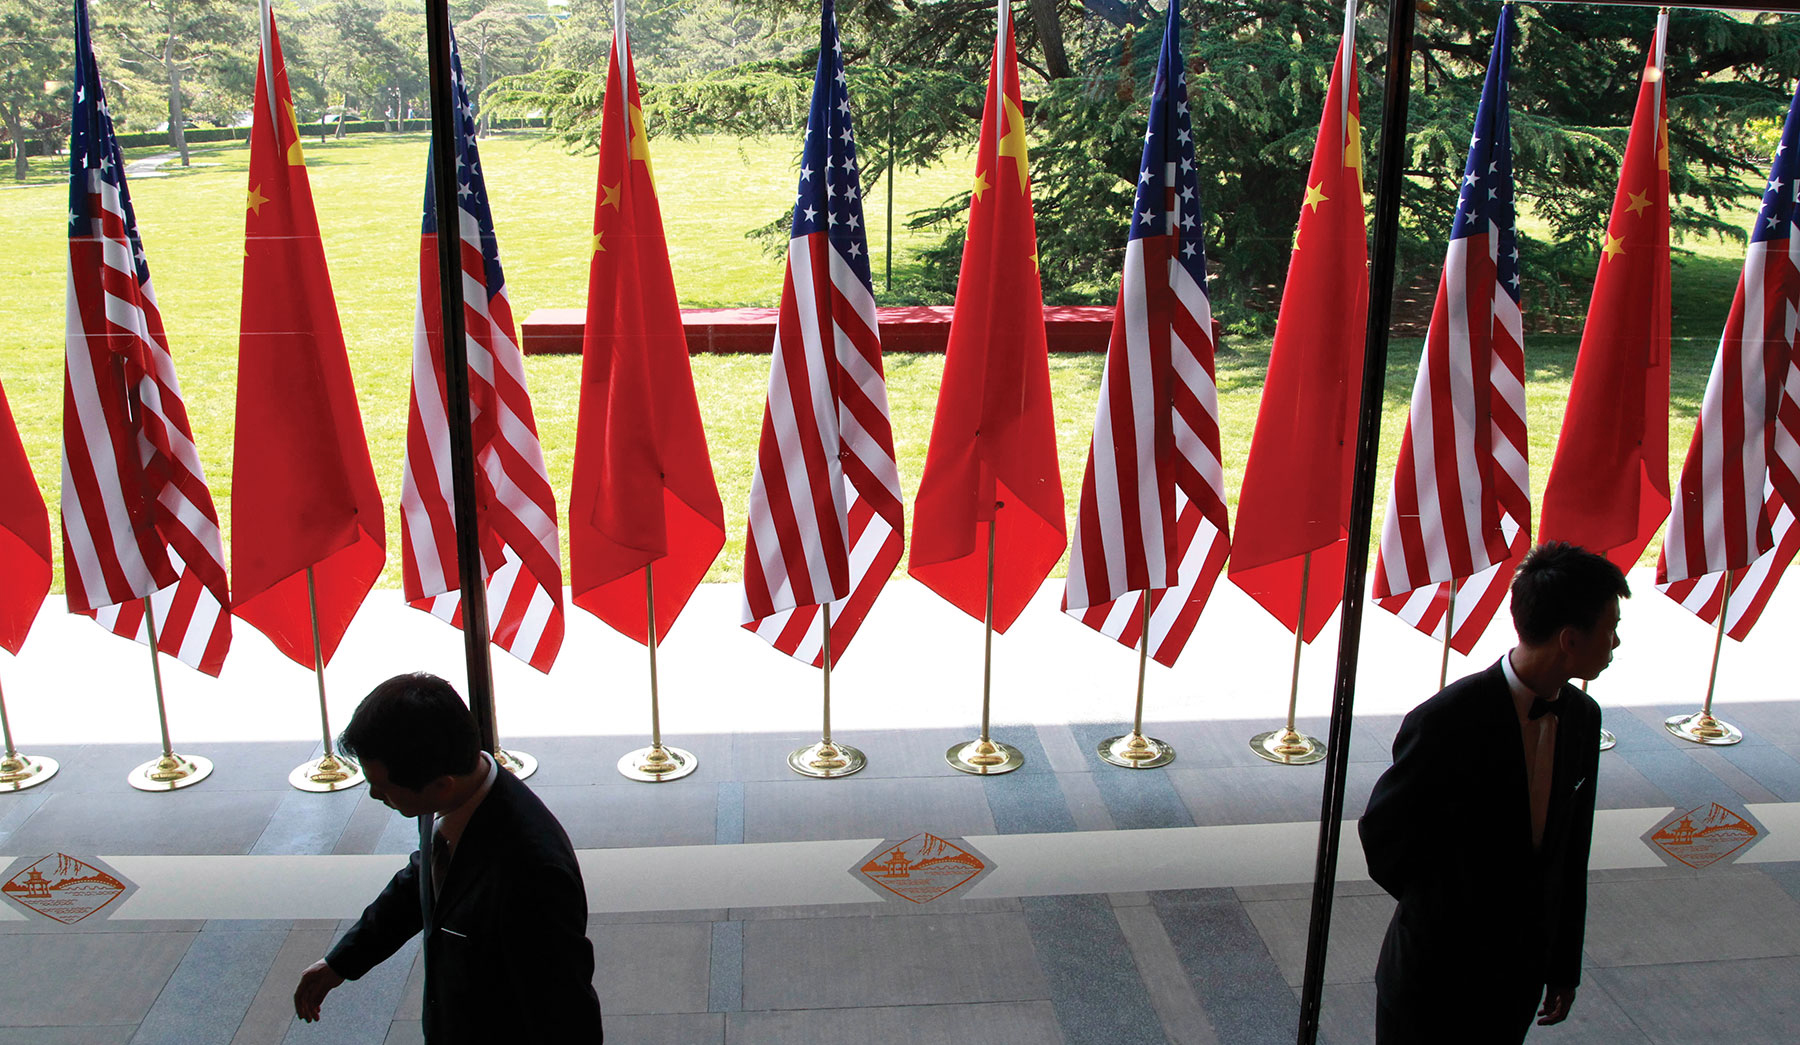 Chinese and U.S. national flags are posted for the opening ceremony of the U.S.-China Strategic and Economic Dialogue in Beijing in May 2012.